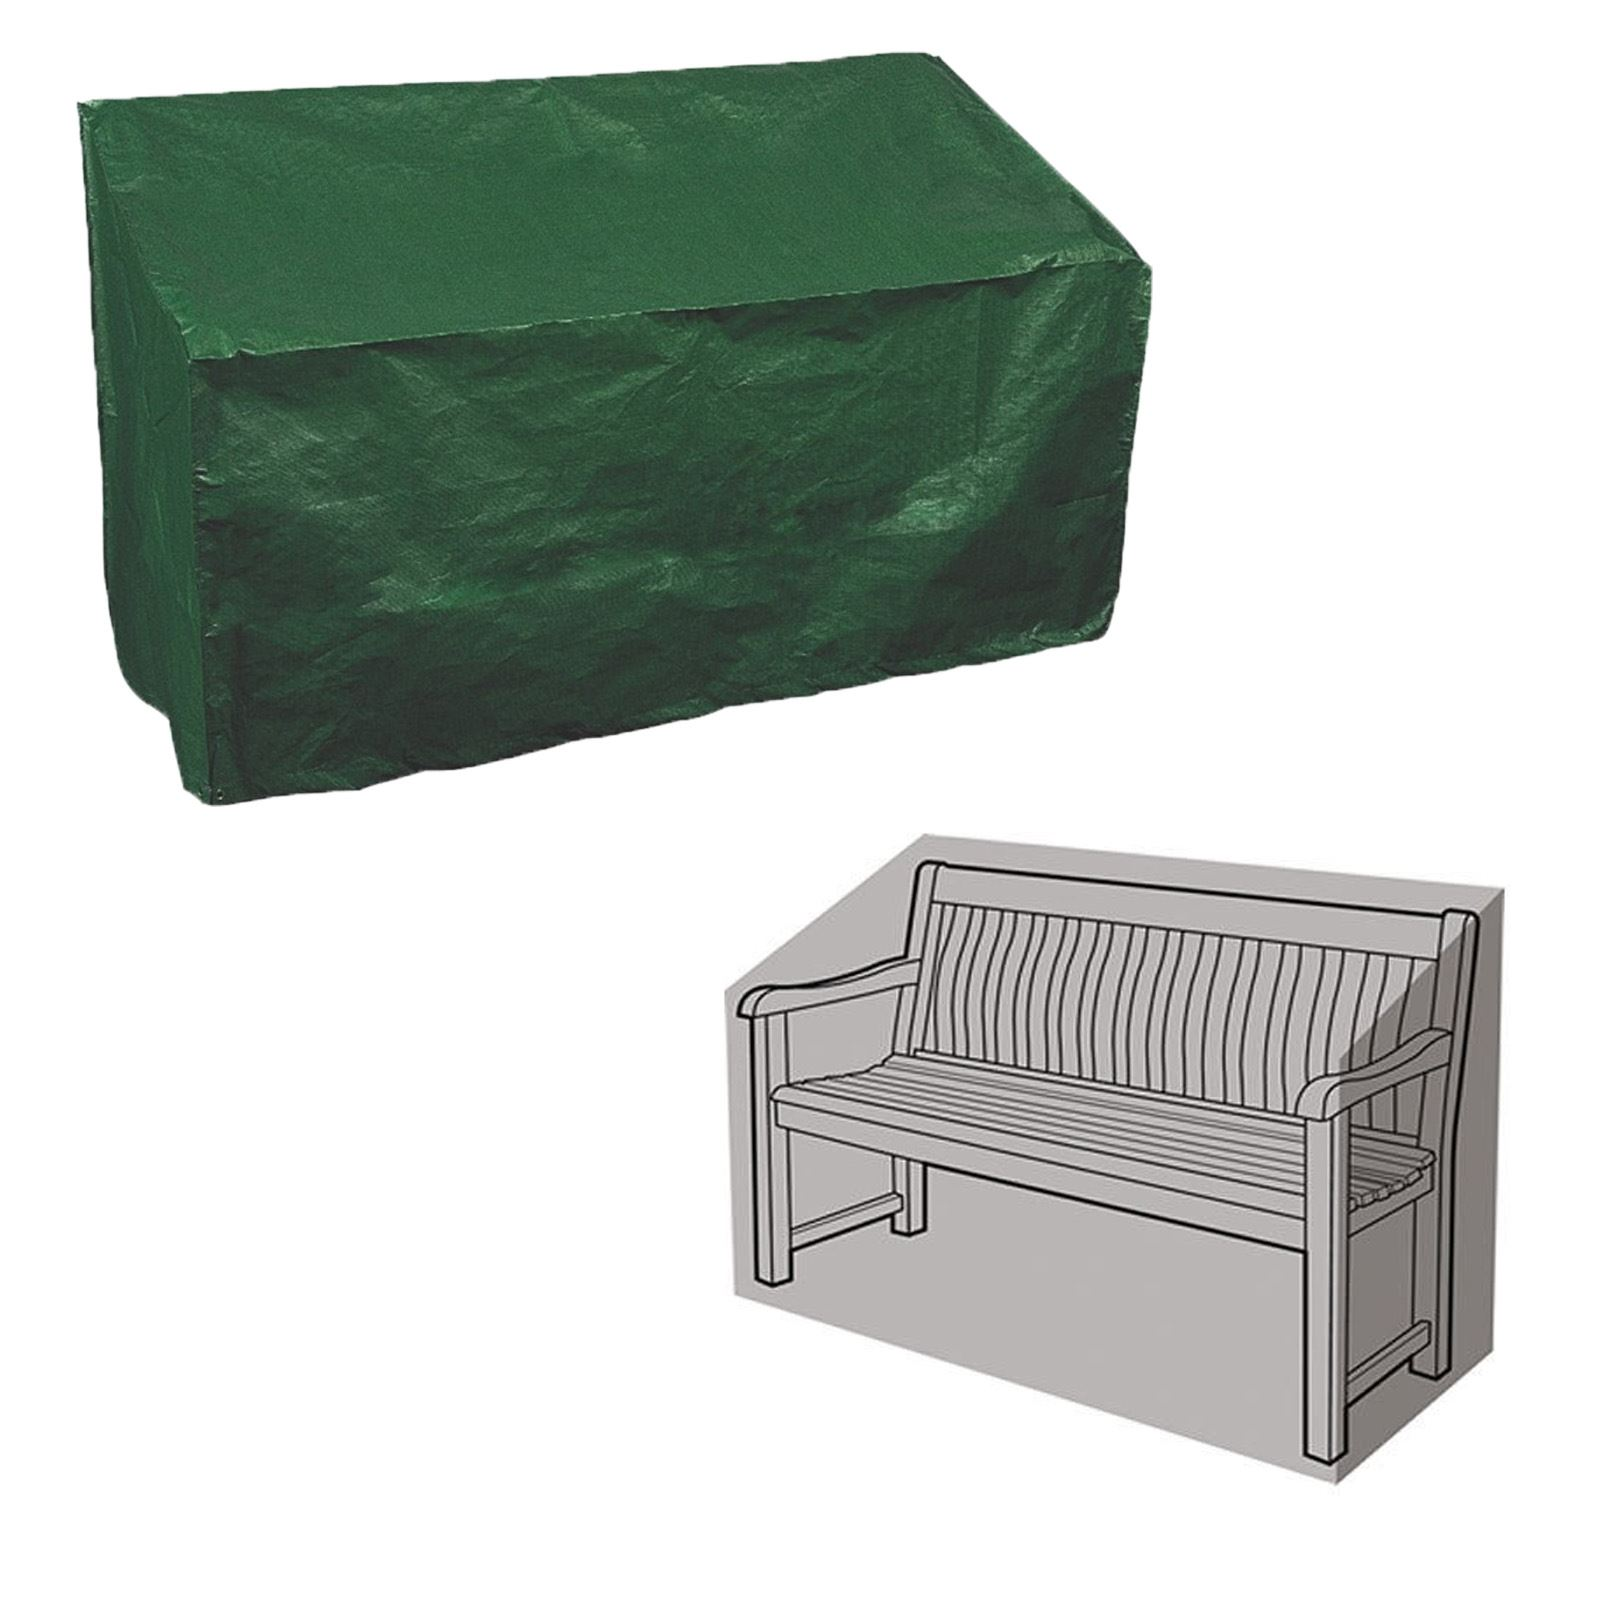 patio hei furniture table qlt spin oversized cover oasis rectangle p garden prod wid set